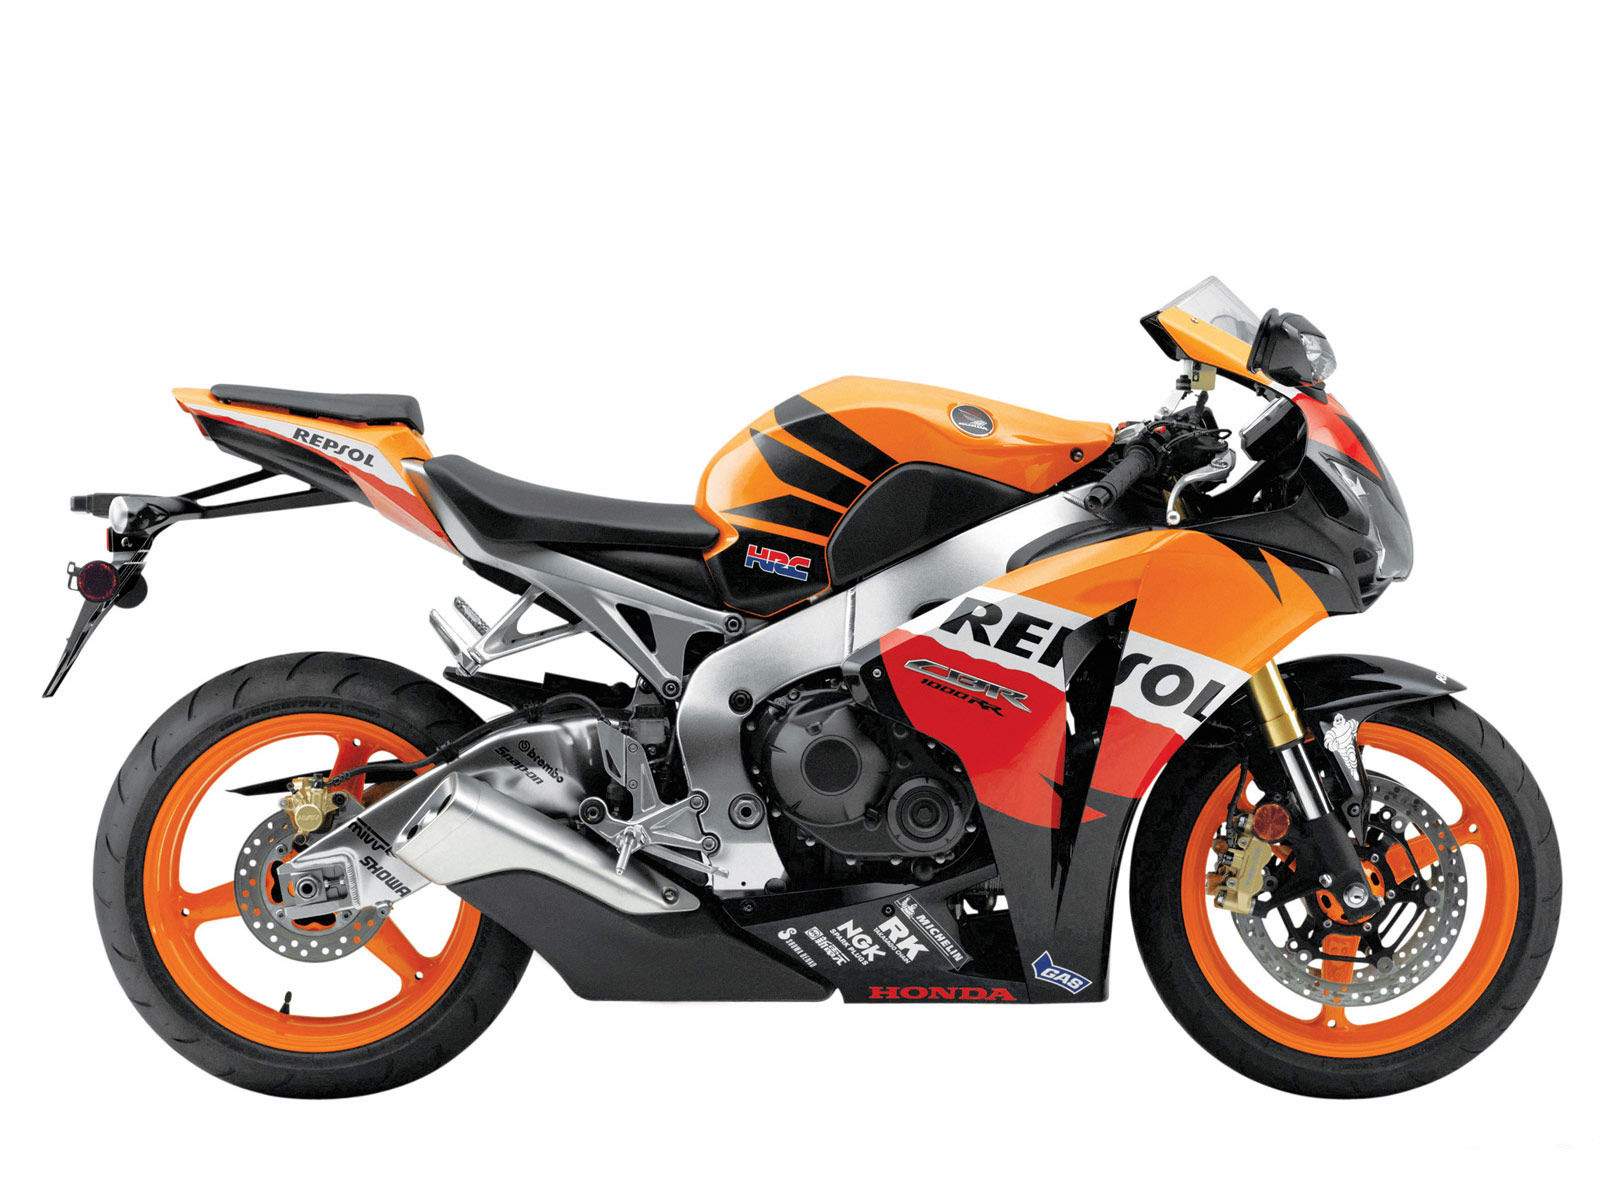 2009 honda cbr 1000 rr abs repsol wallpapers. Black Bedroom Furniture Sets. Home Design Ideas